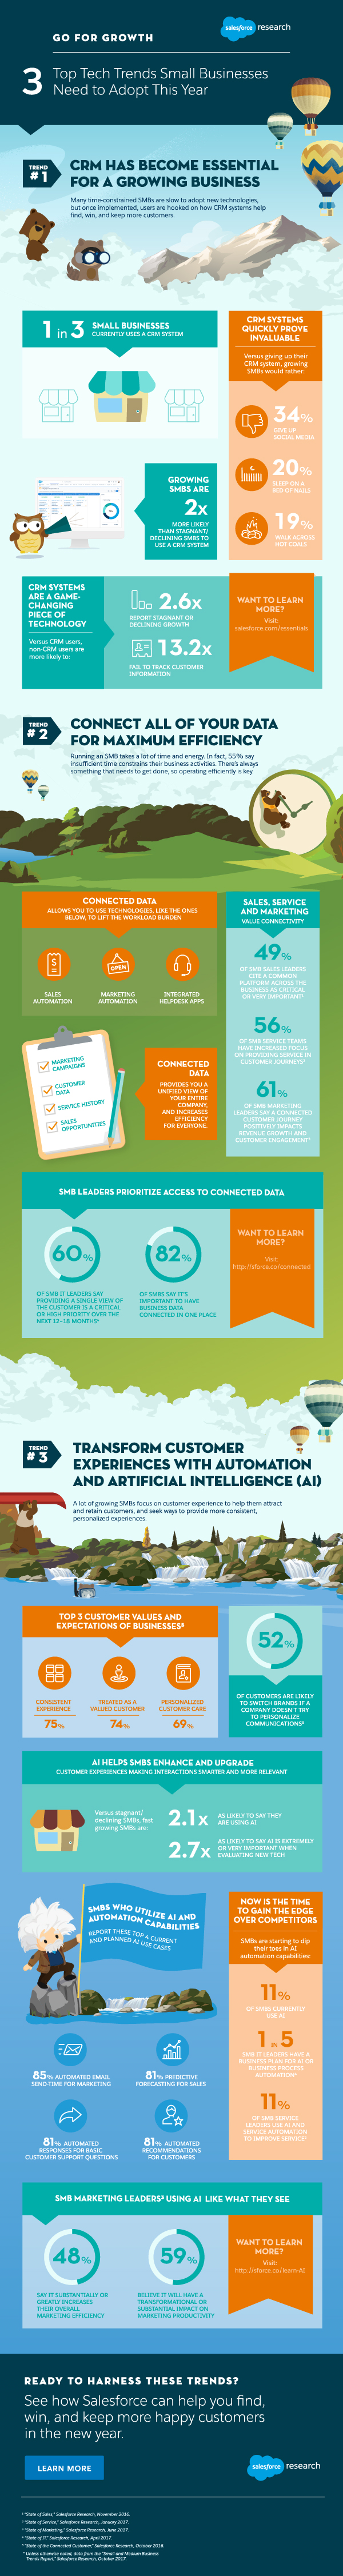 3 Big Small Business Technology Trends to Follow (INFOGRAPHIC)